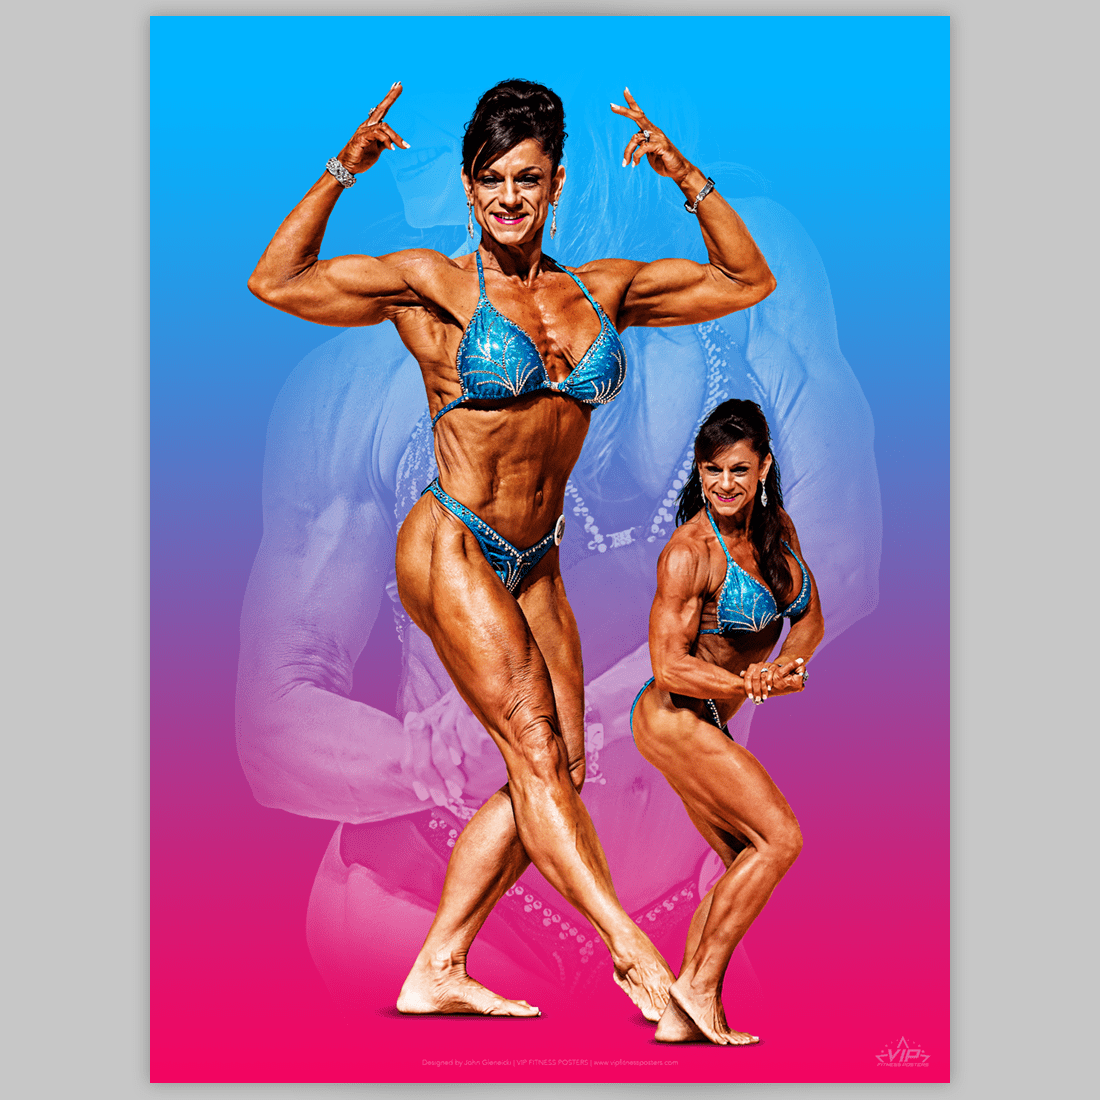 one-of-a-kind fitness poster for the fitness competitor